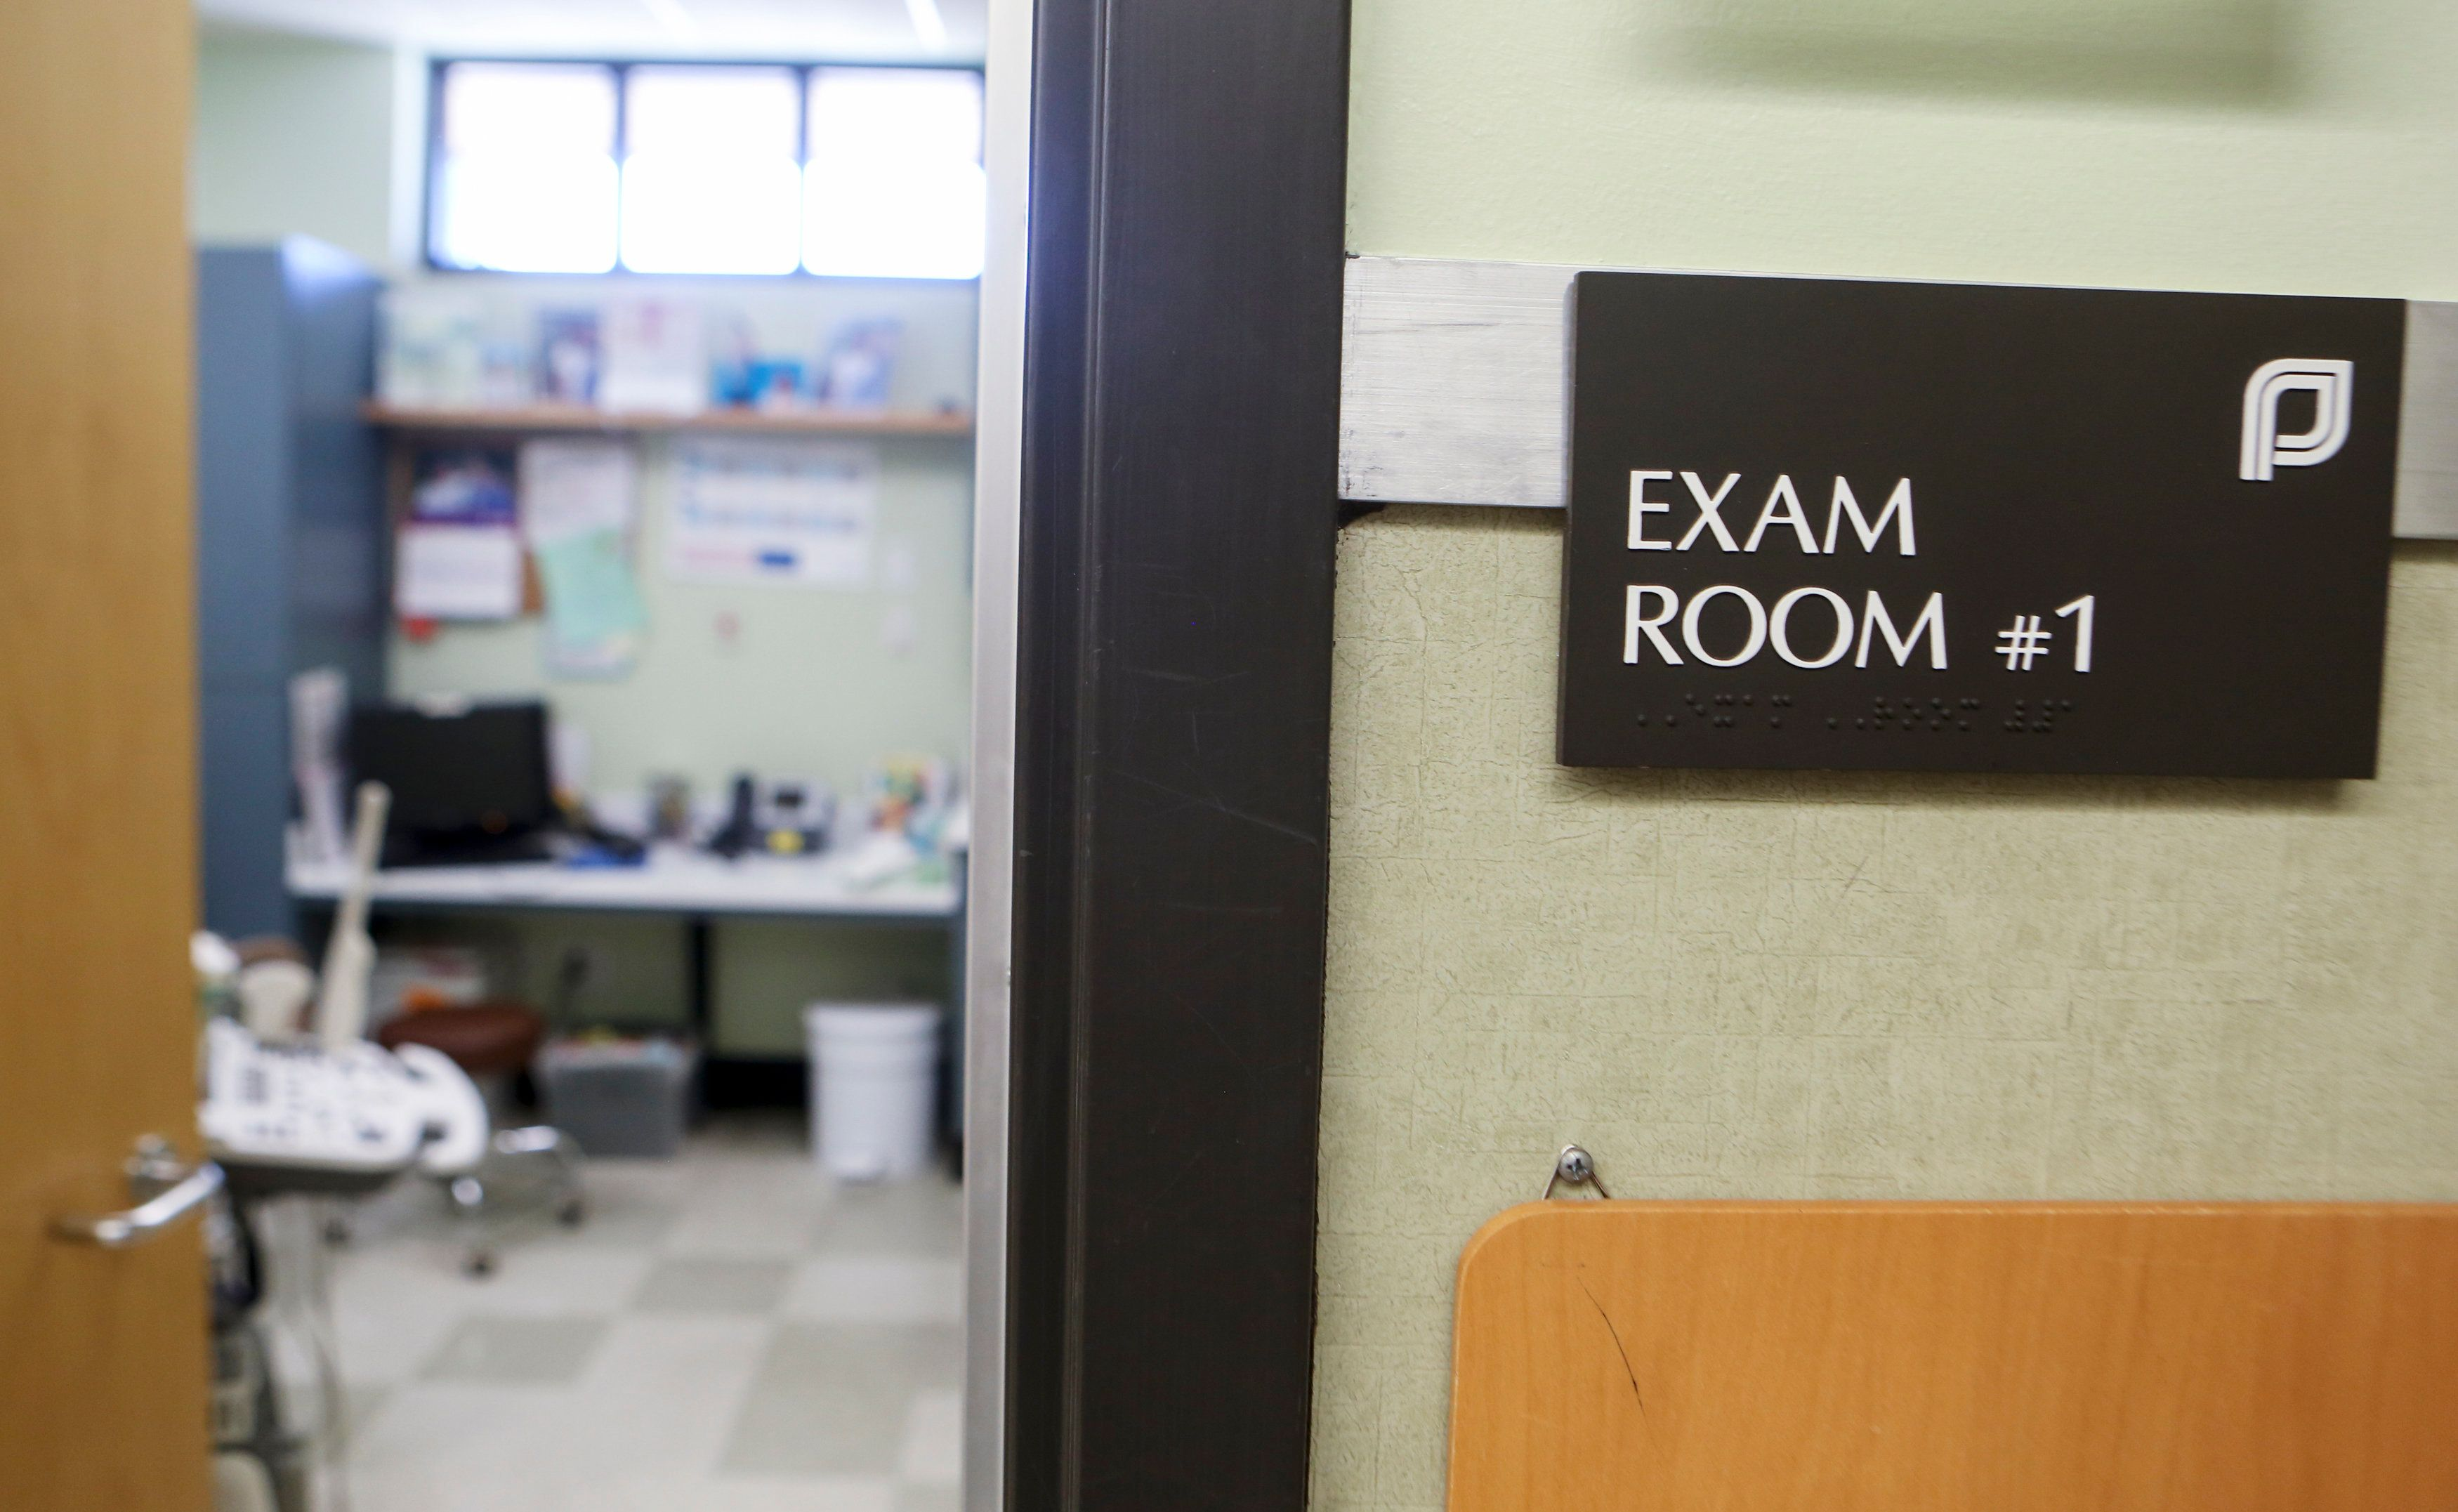 An exam room at the Planned Parenthood South Austin Health Center is shown following the U.S. Supreme Court decision striking down a Texas law imposing strict regulations on abortion doctors and facilities in Austin, Texas, U.S. June 27, 2016.   REUTERS/Ilana Panich-Linsman